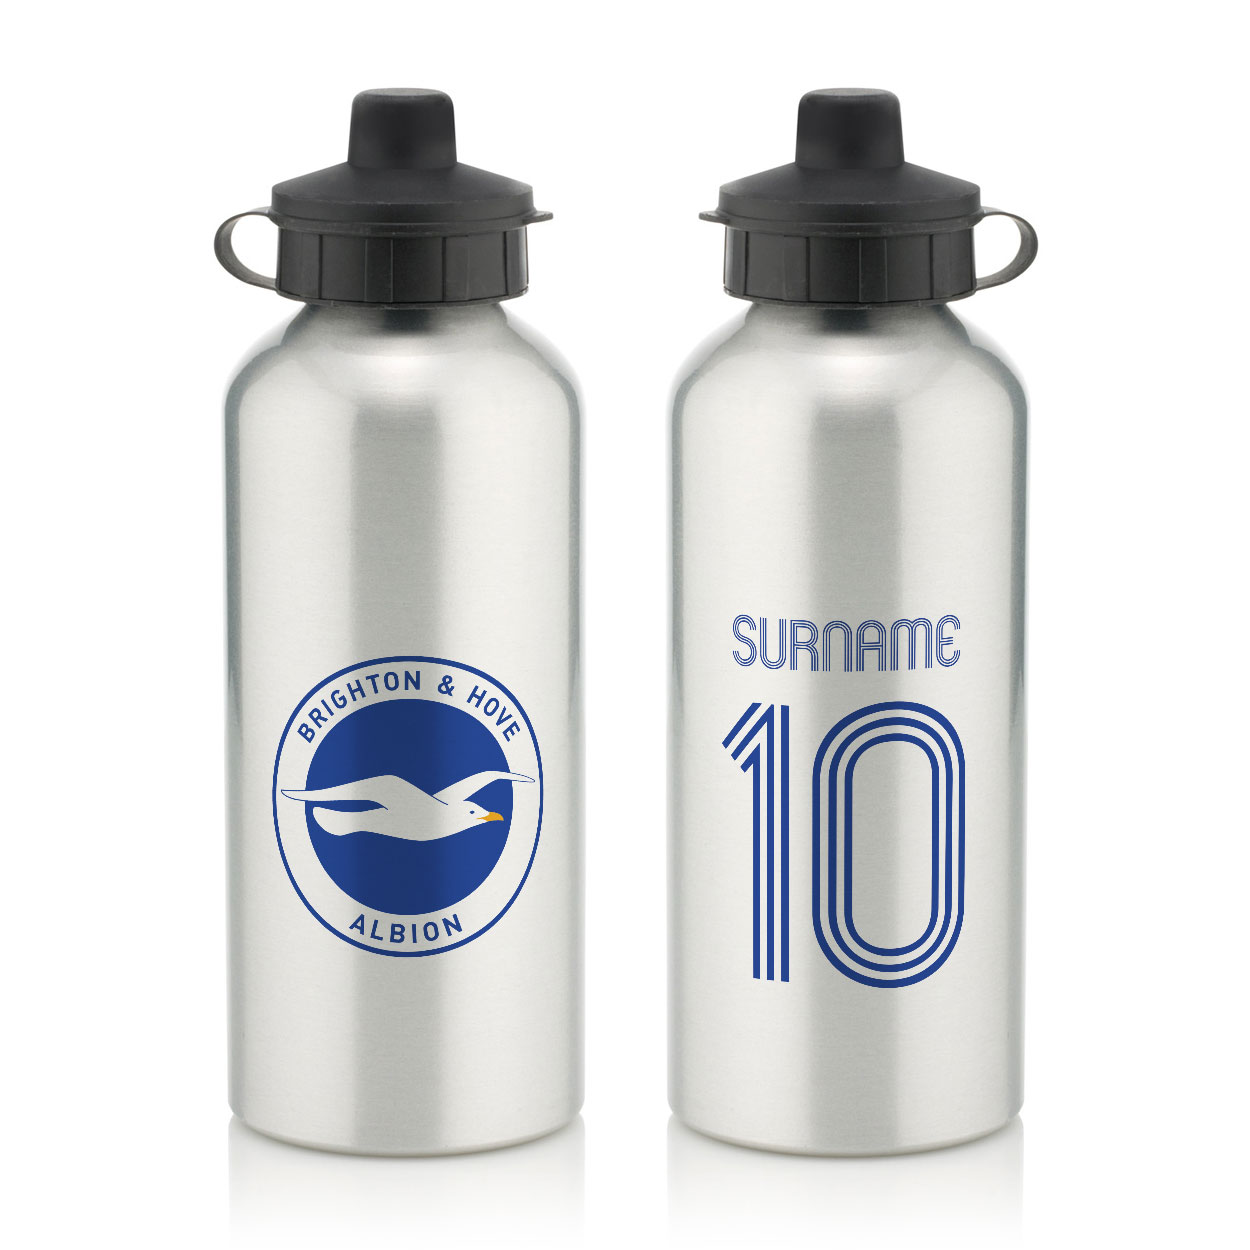 Brighton & Hove Albion FC Retro Shirt Water Bottle